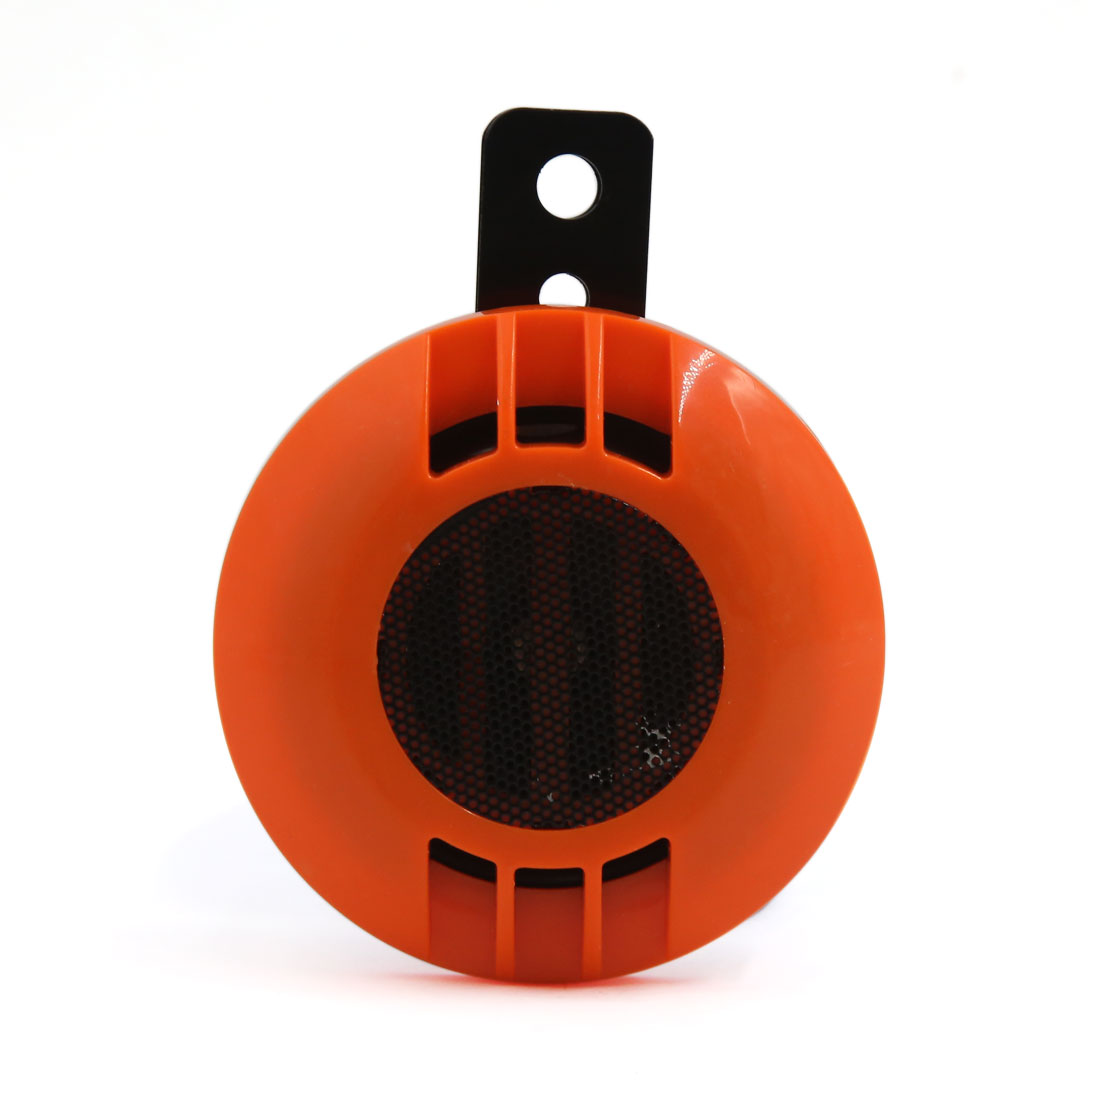 105DB Orange Waterproof Sandproof Electric Blast Tone Horn for Cars Motorbikes